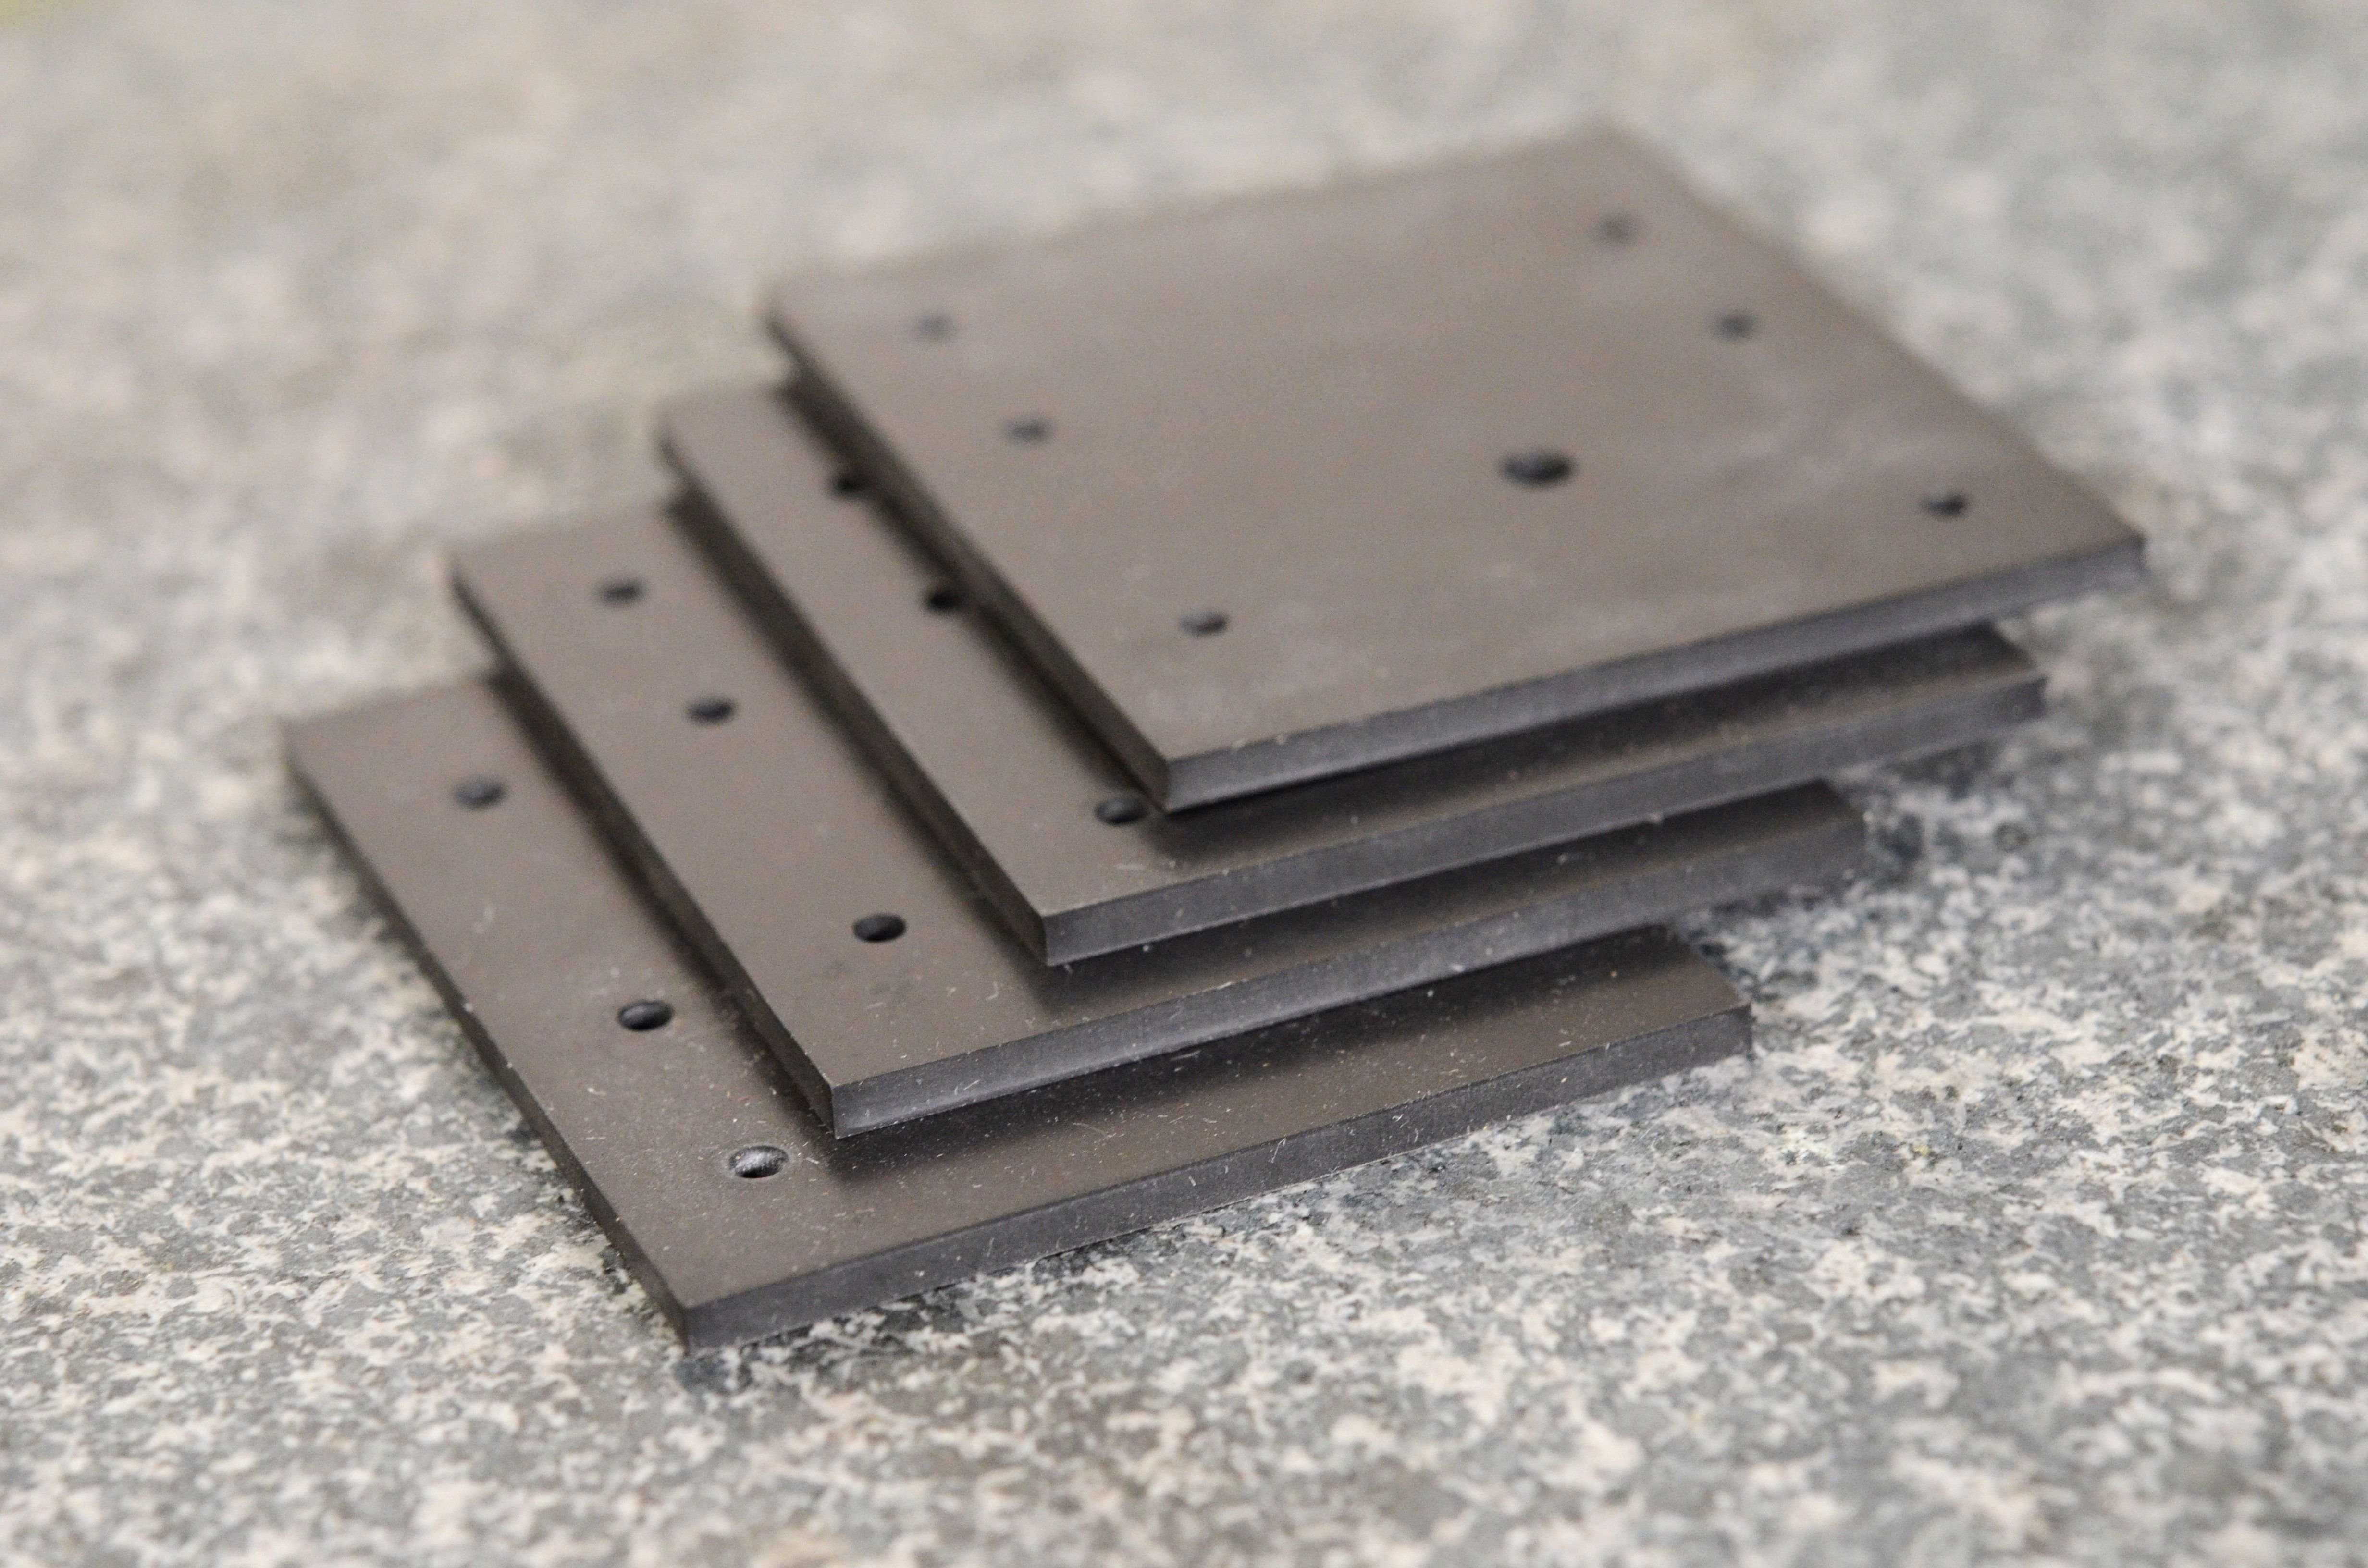 Best Die Cut Gaskets for Water Sealing – Poron® or Bisco® Silicone Foam?